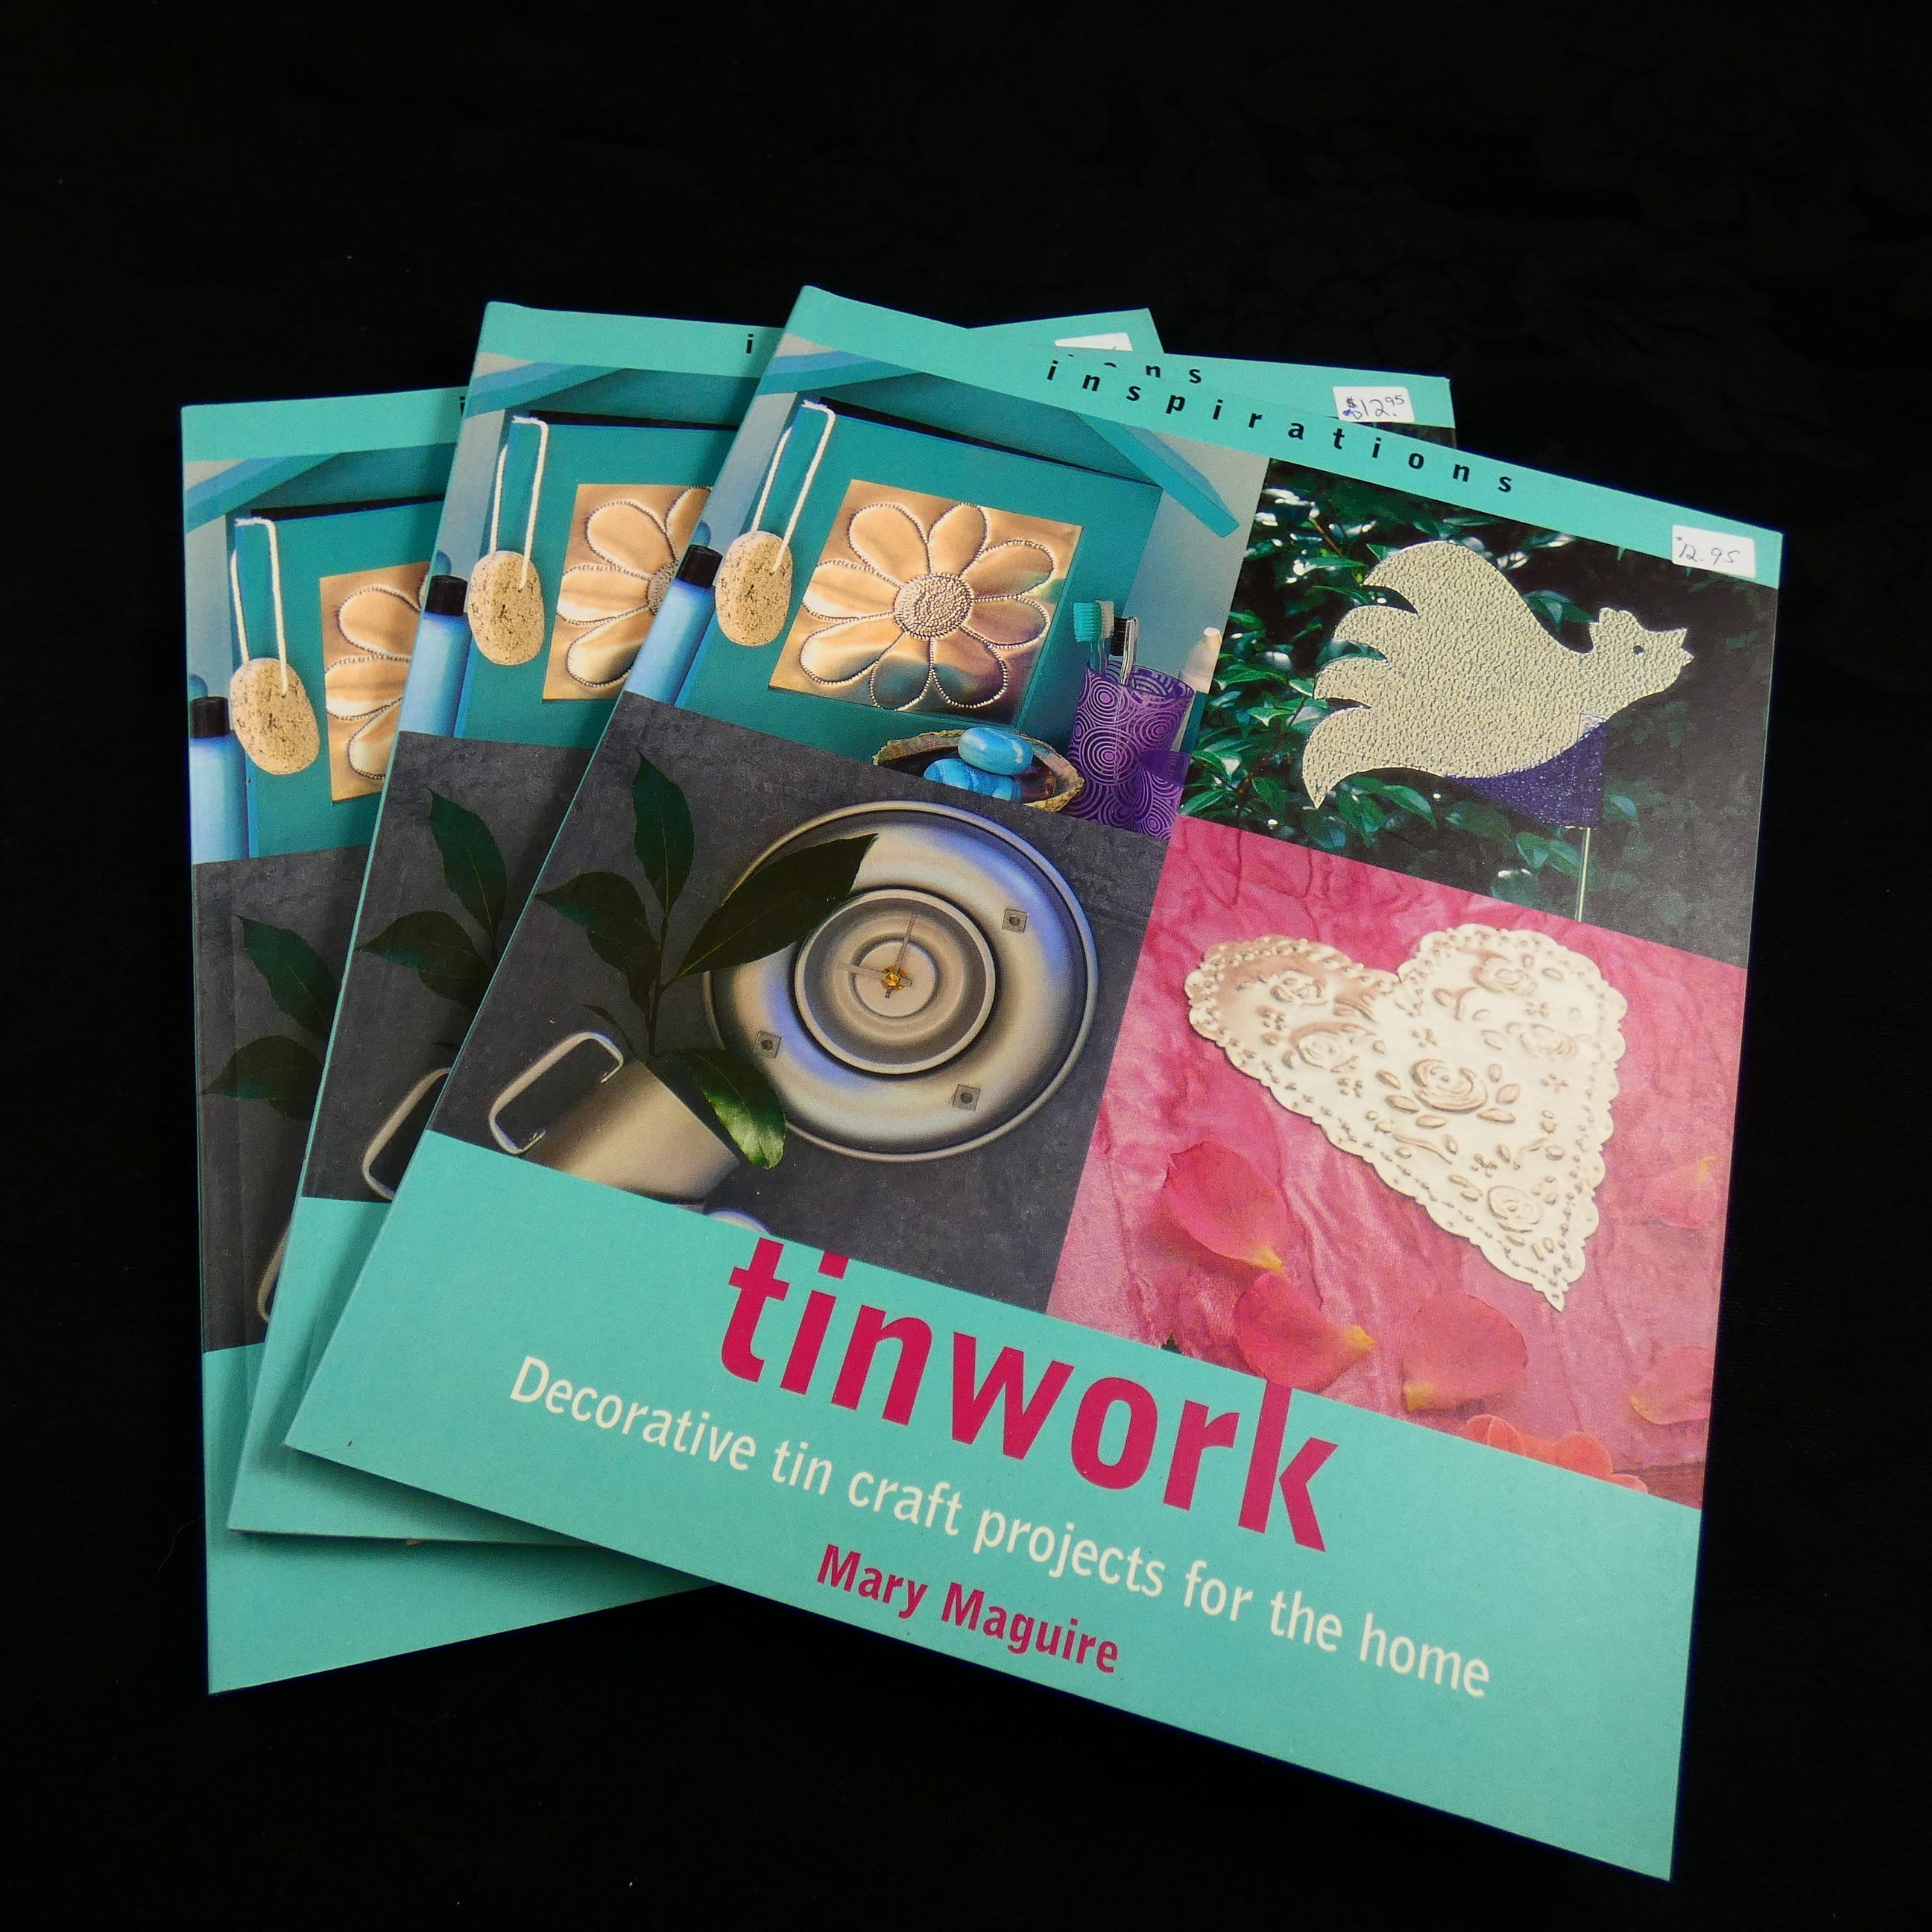 Inspirations-Tinwork by Mary Maguire